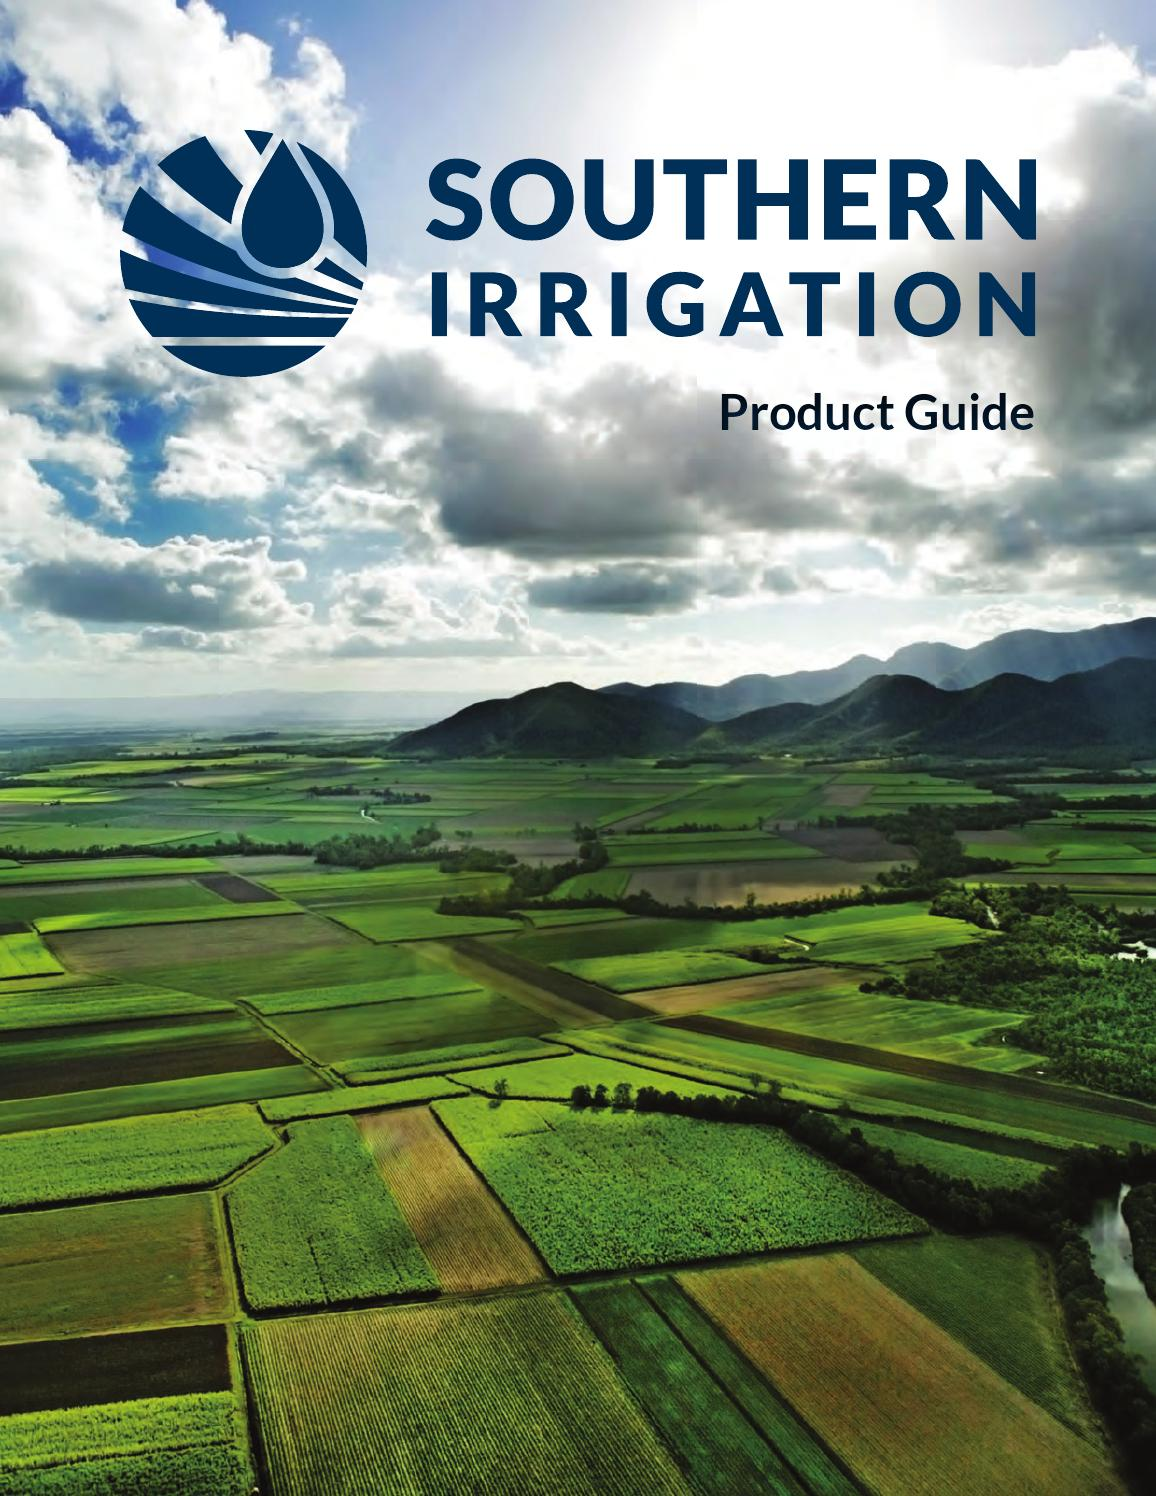 Southern Irrigation Product Guide By Drip Issuu 200175 Circuitwriter Pen With Precision Conductive Ink